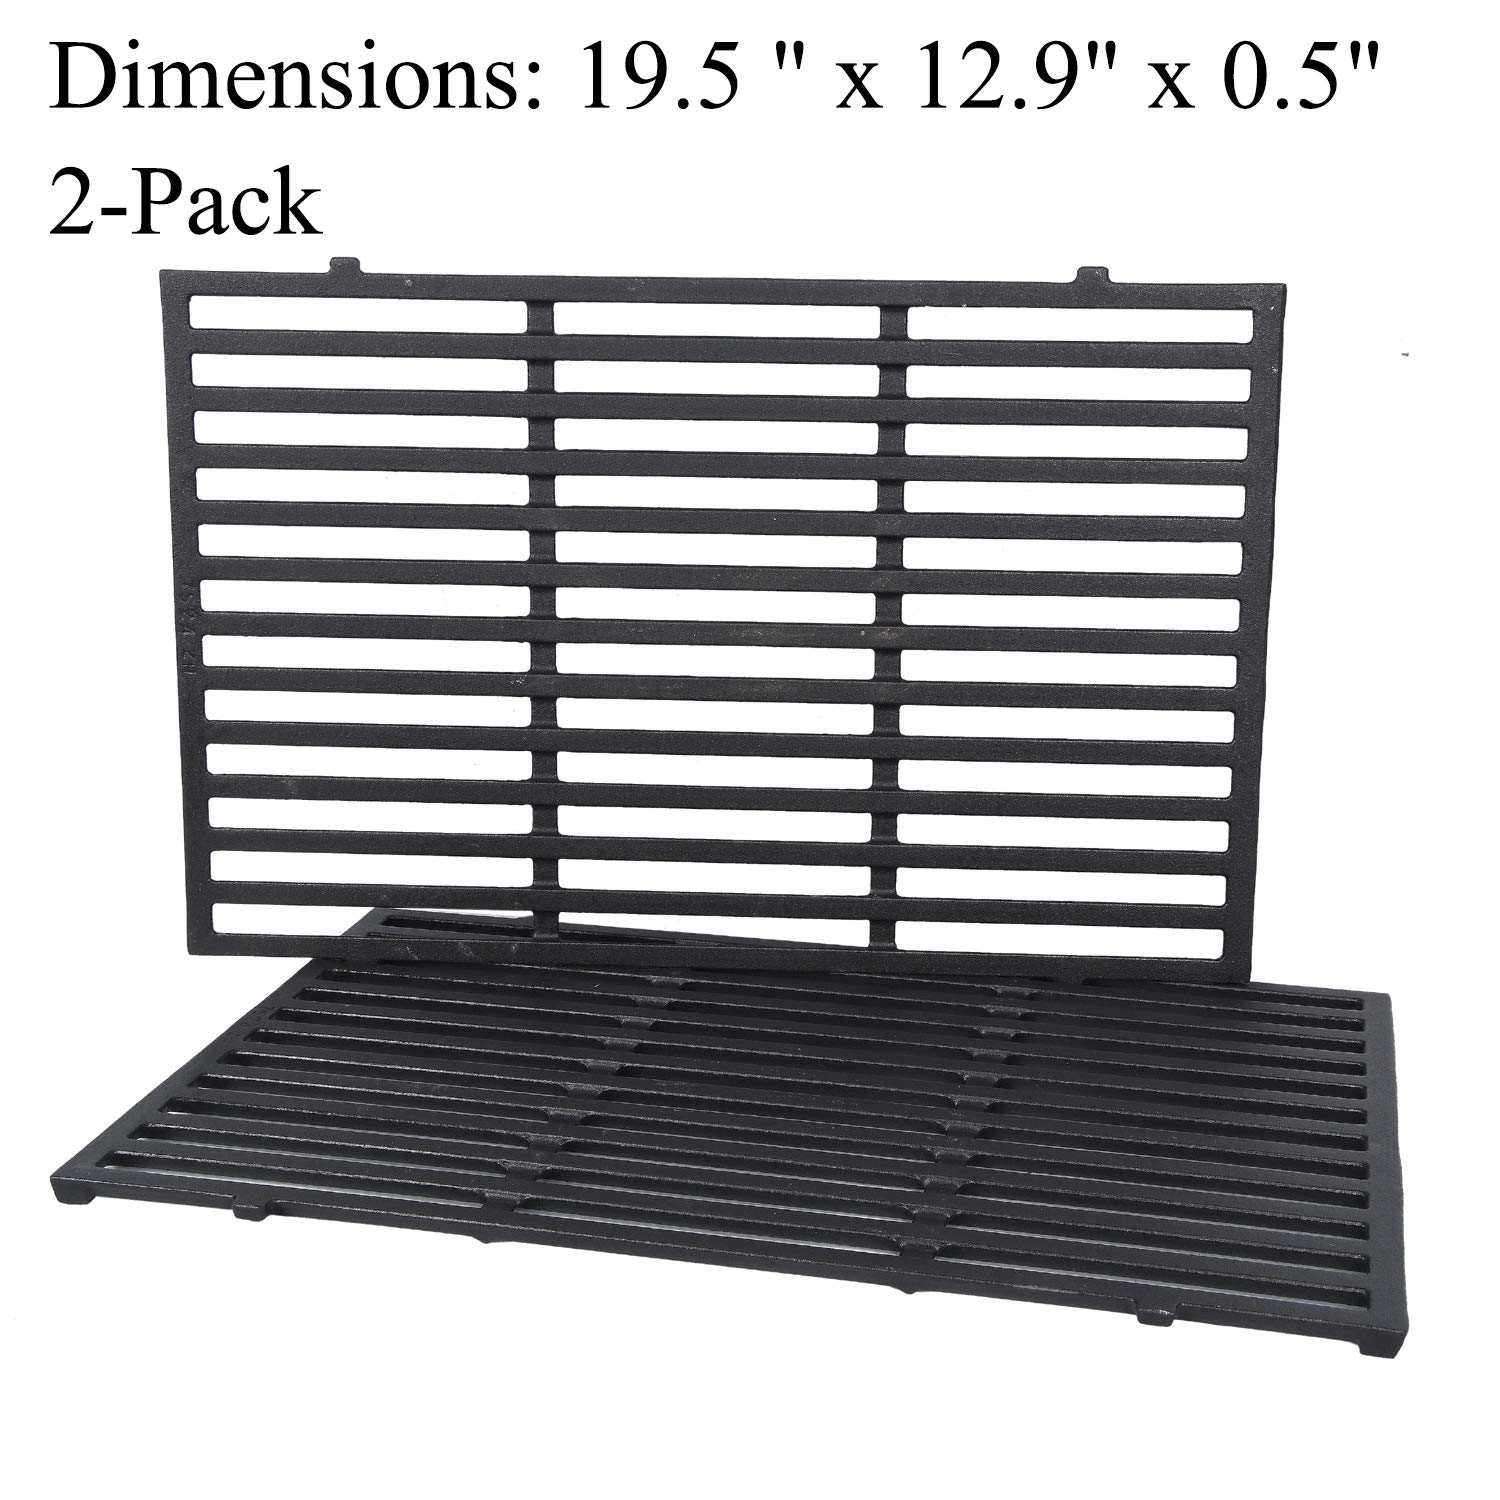 GGC Grill Grates Replacement for Weber 7524, Weber Genesis E-310, E-320, E-330, S-310, S-320, S330, ESP-310, ESP-320 and Others, 2-Pack Porcelain-Enameled Cast-Iron Cooking Grid(19.5'' x12.9'' x0.5'') by GGC